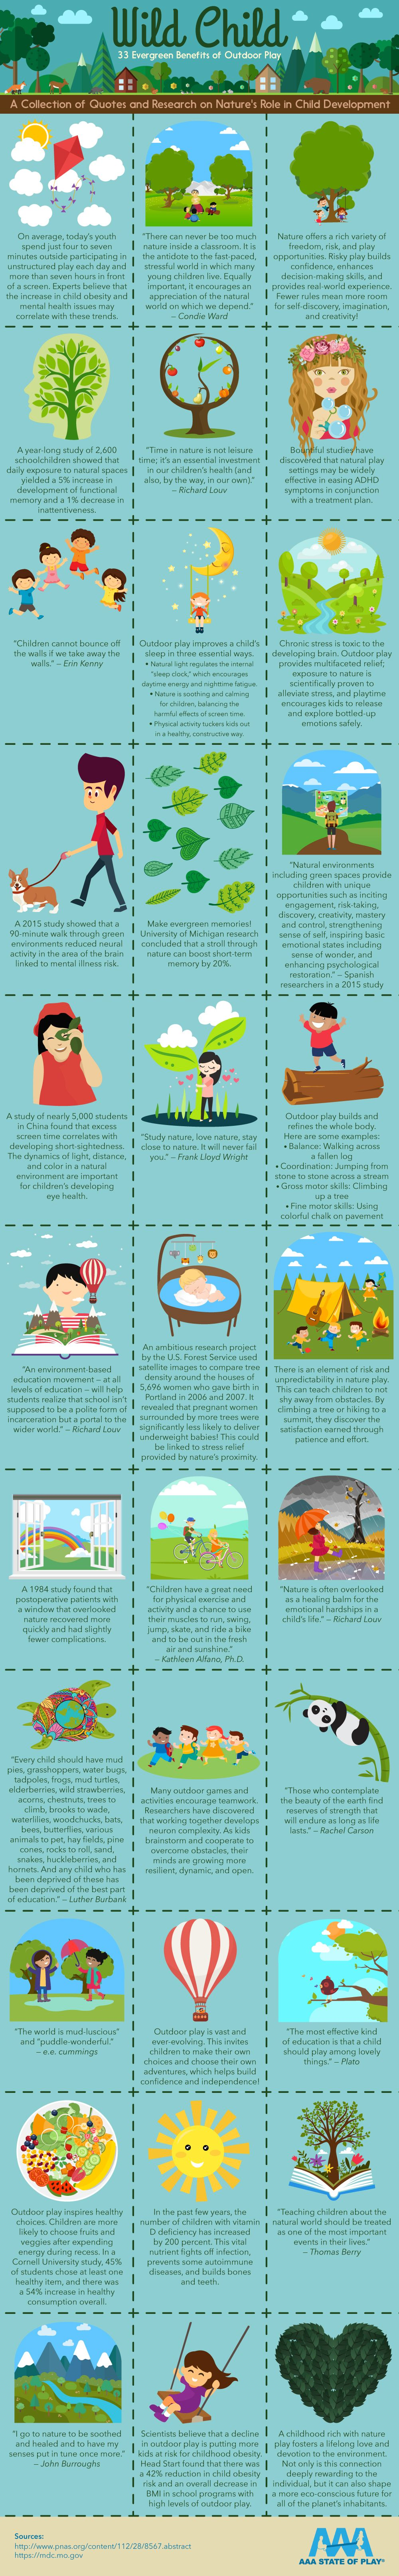 33 Benefits of Outdoor Play #Infographic